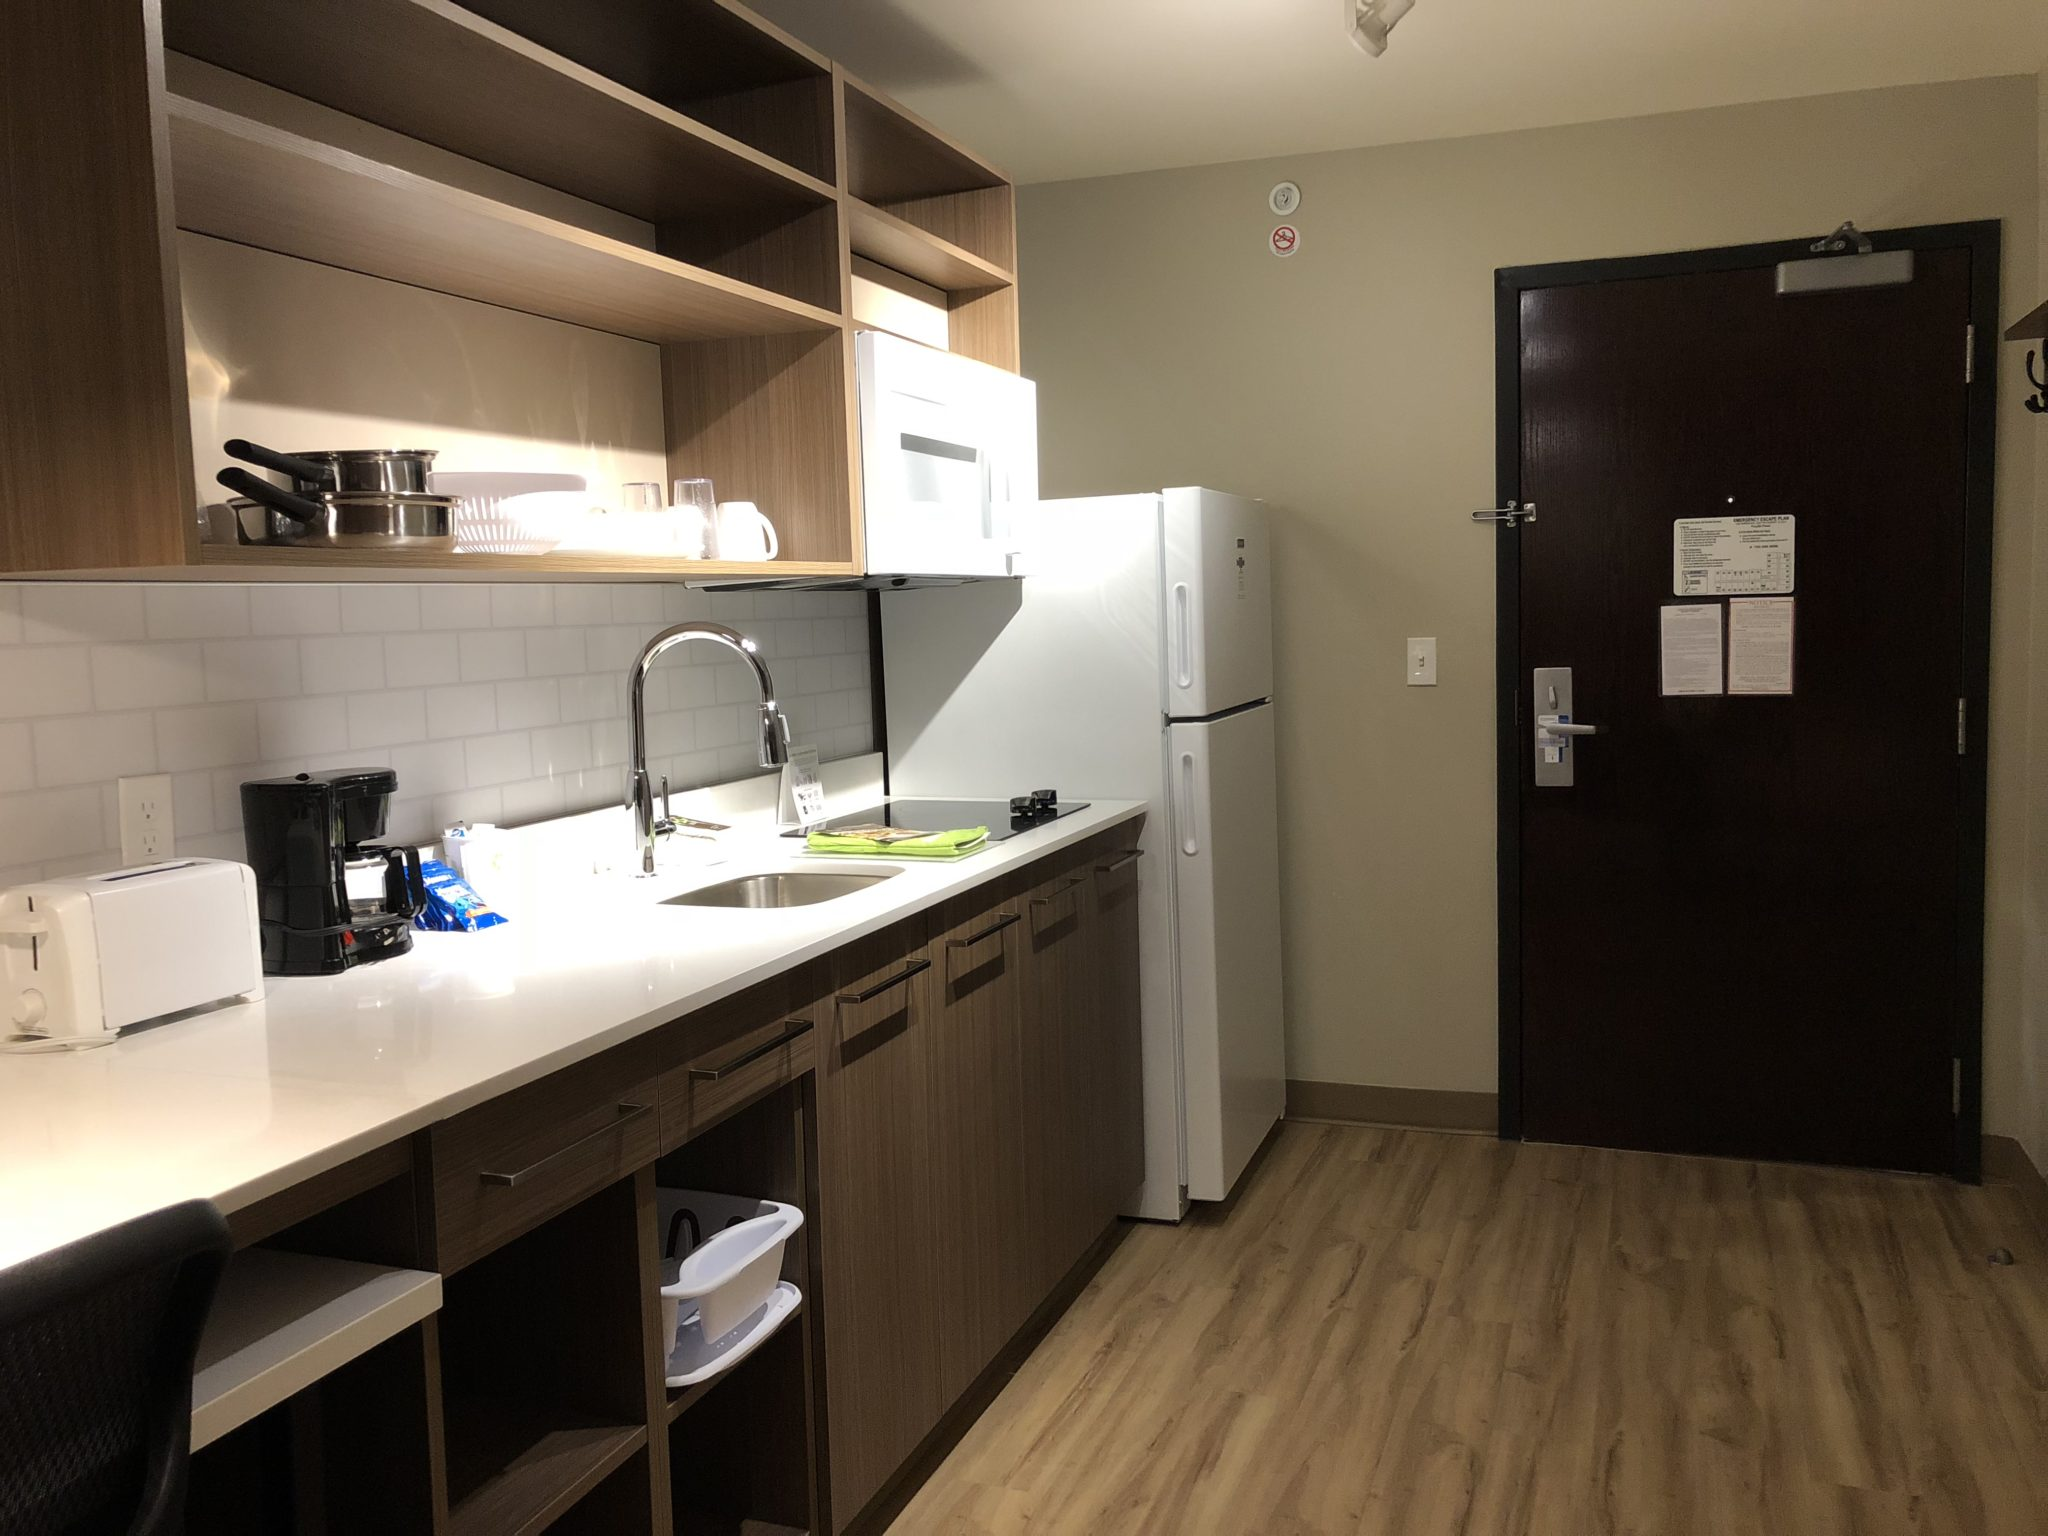 In the newly remodeled Extended Stay America in East Providence, RI, they have re-imagined everything to provide you with the best stay possible.